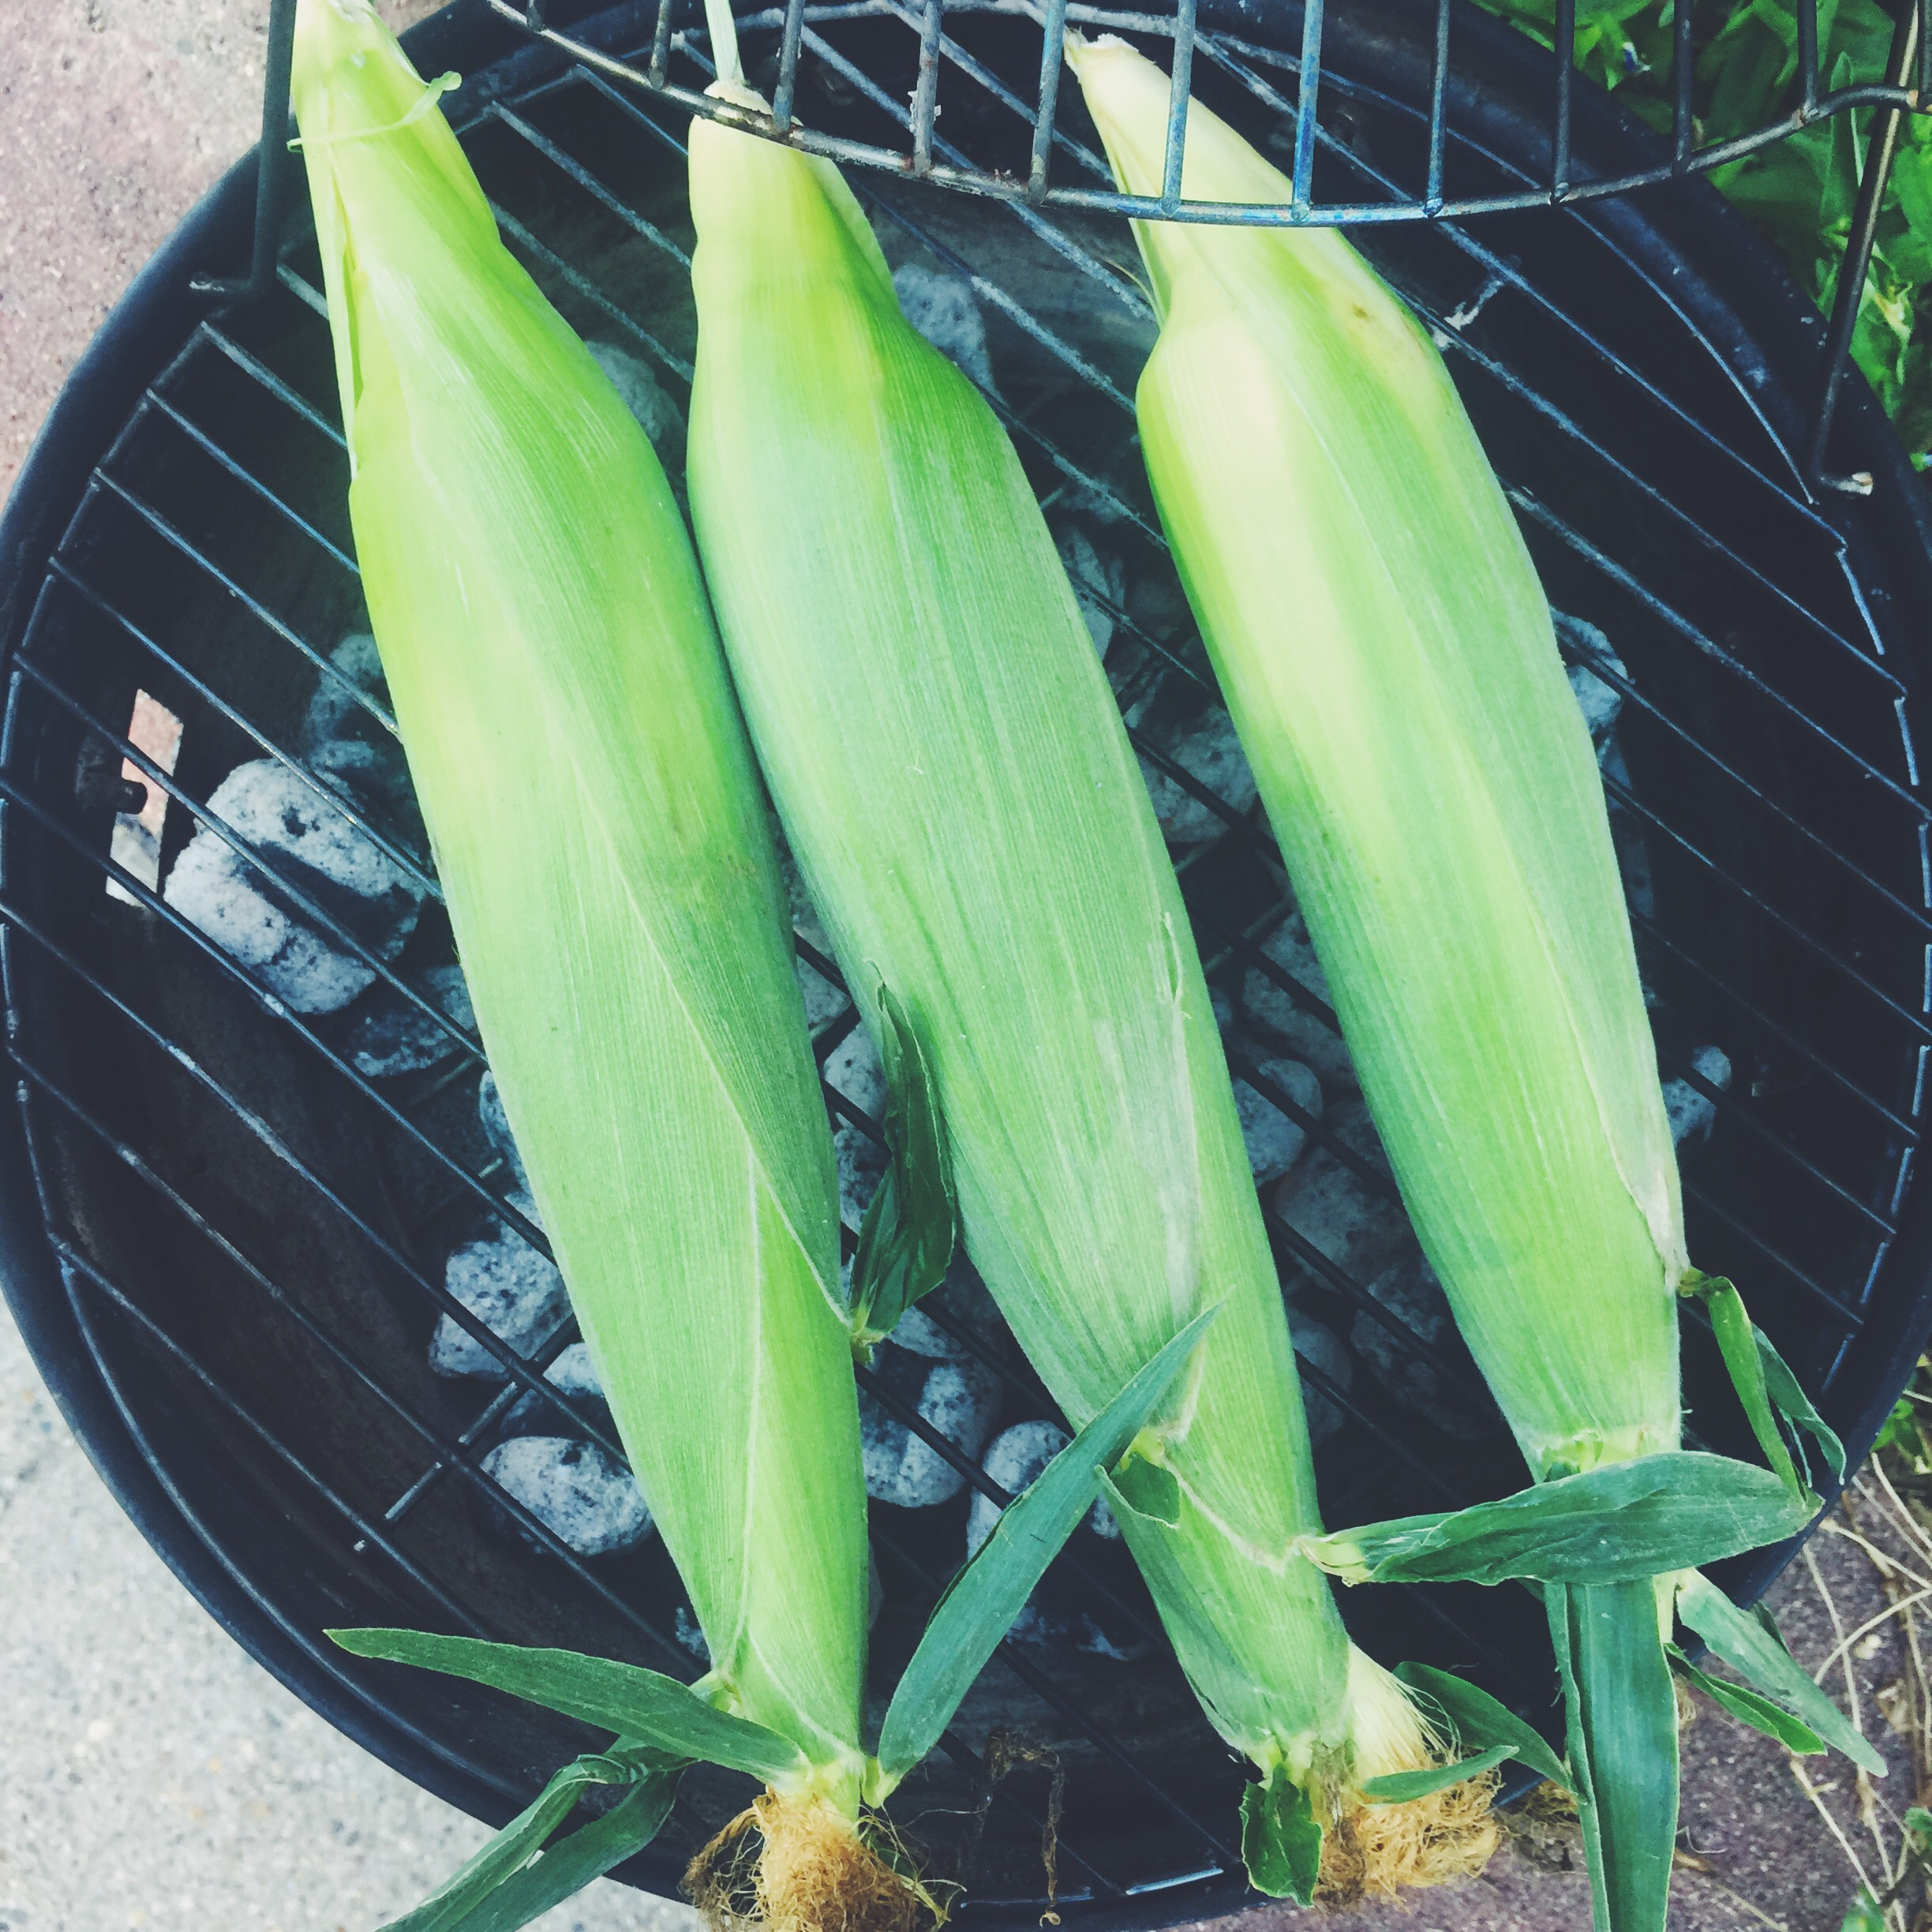 corn on the grill!